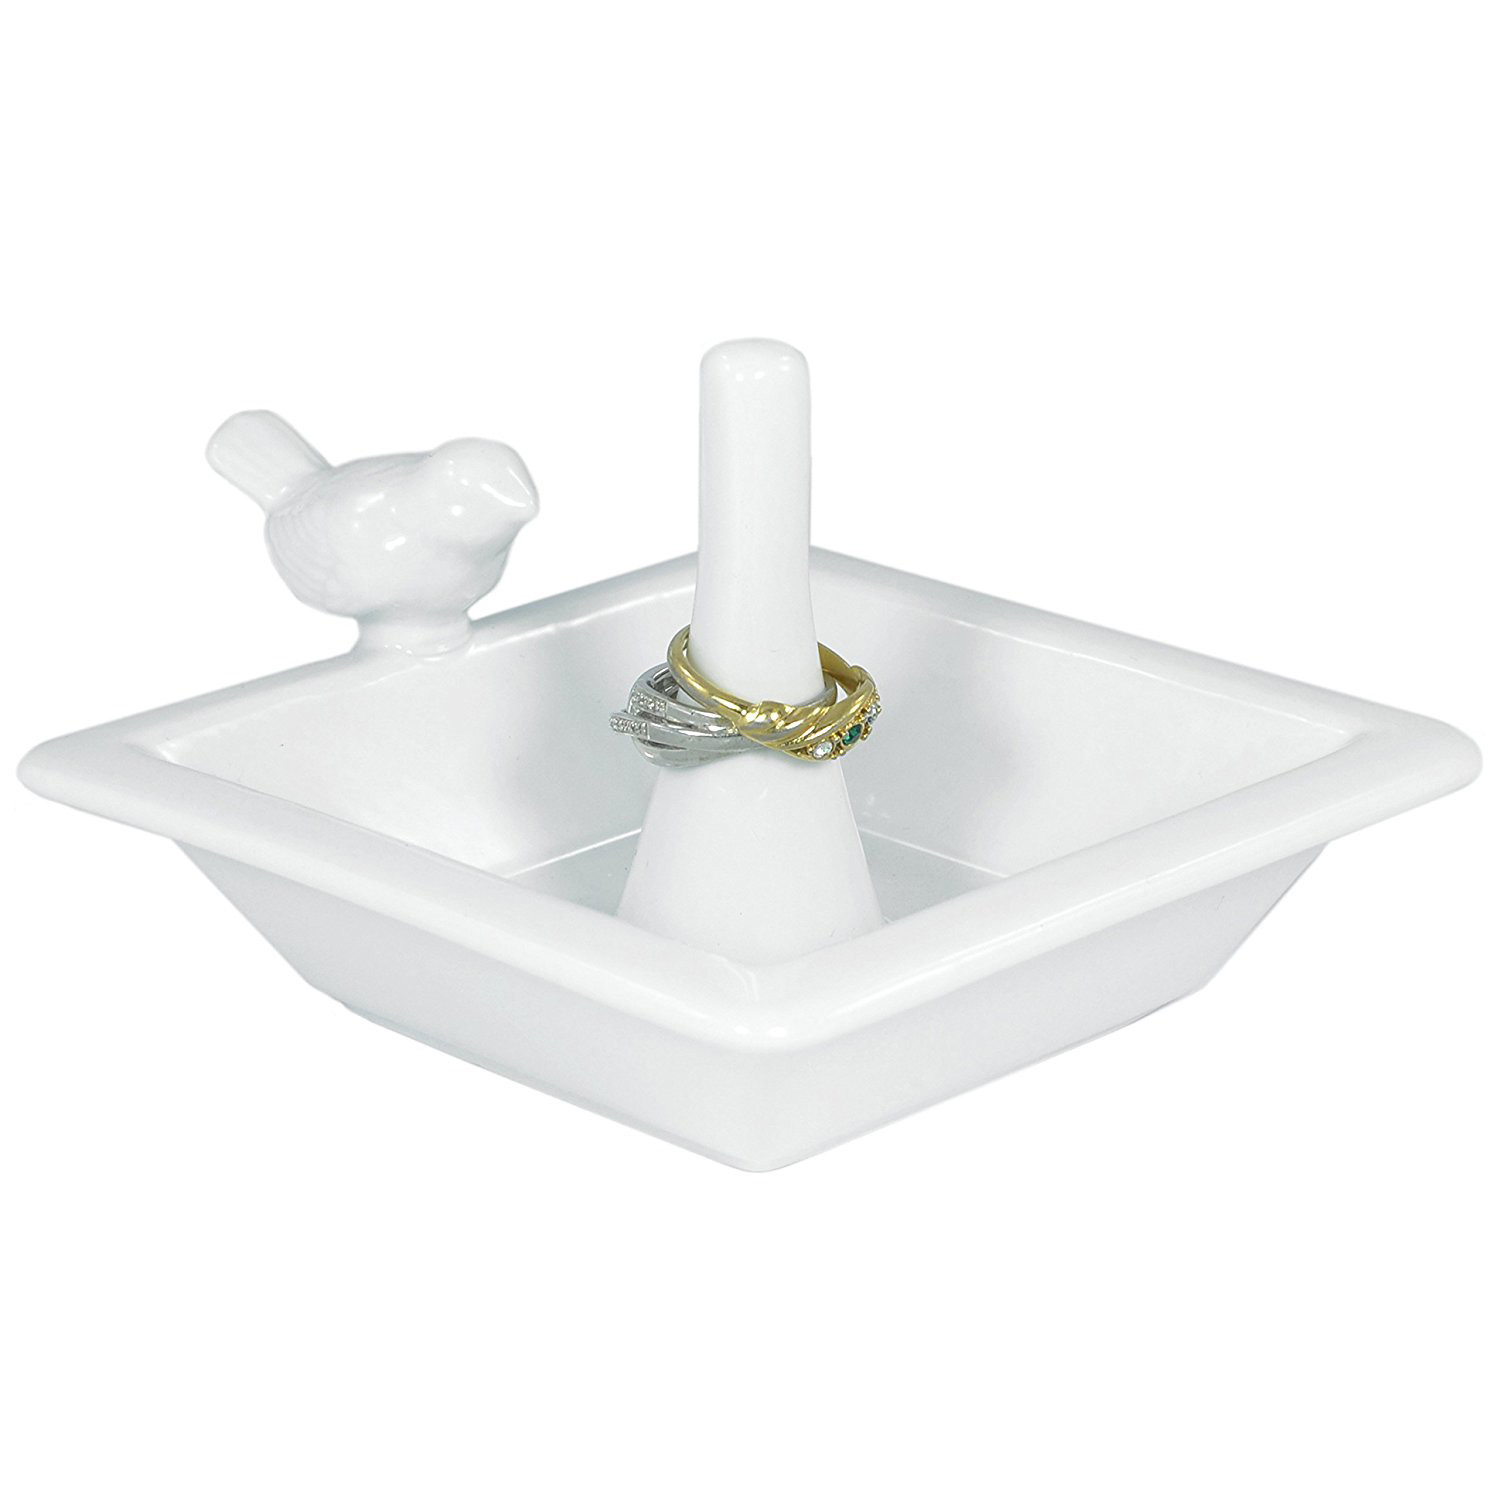 Cute Square Ceramic White Ring Dish Tray